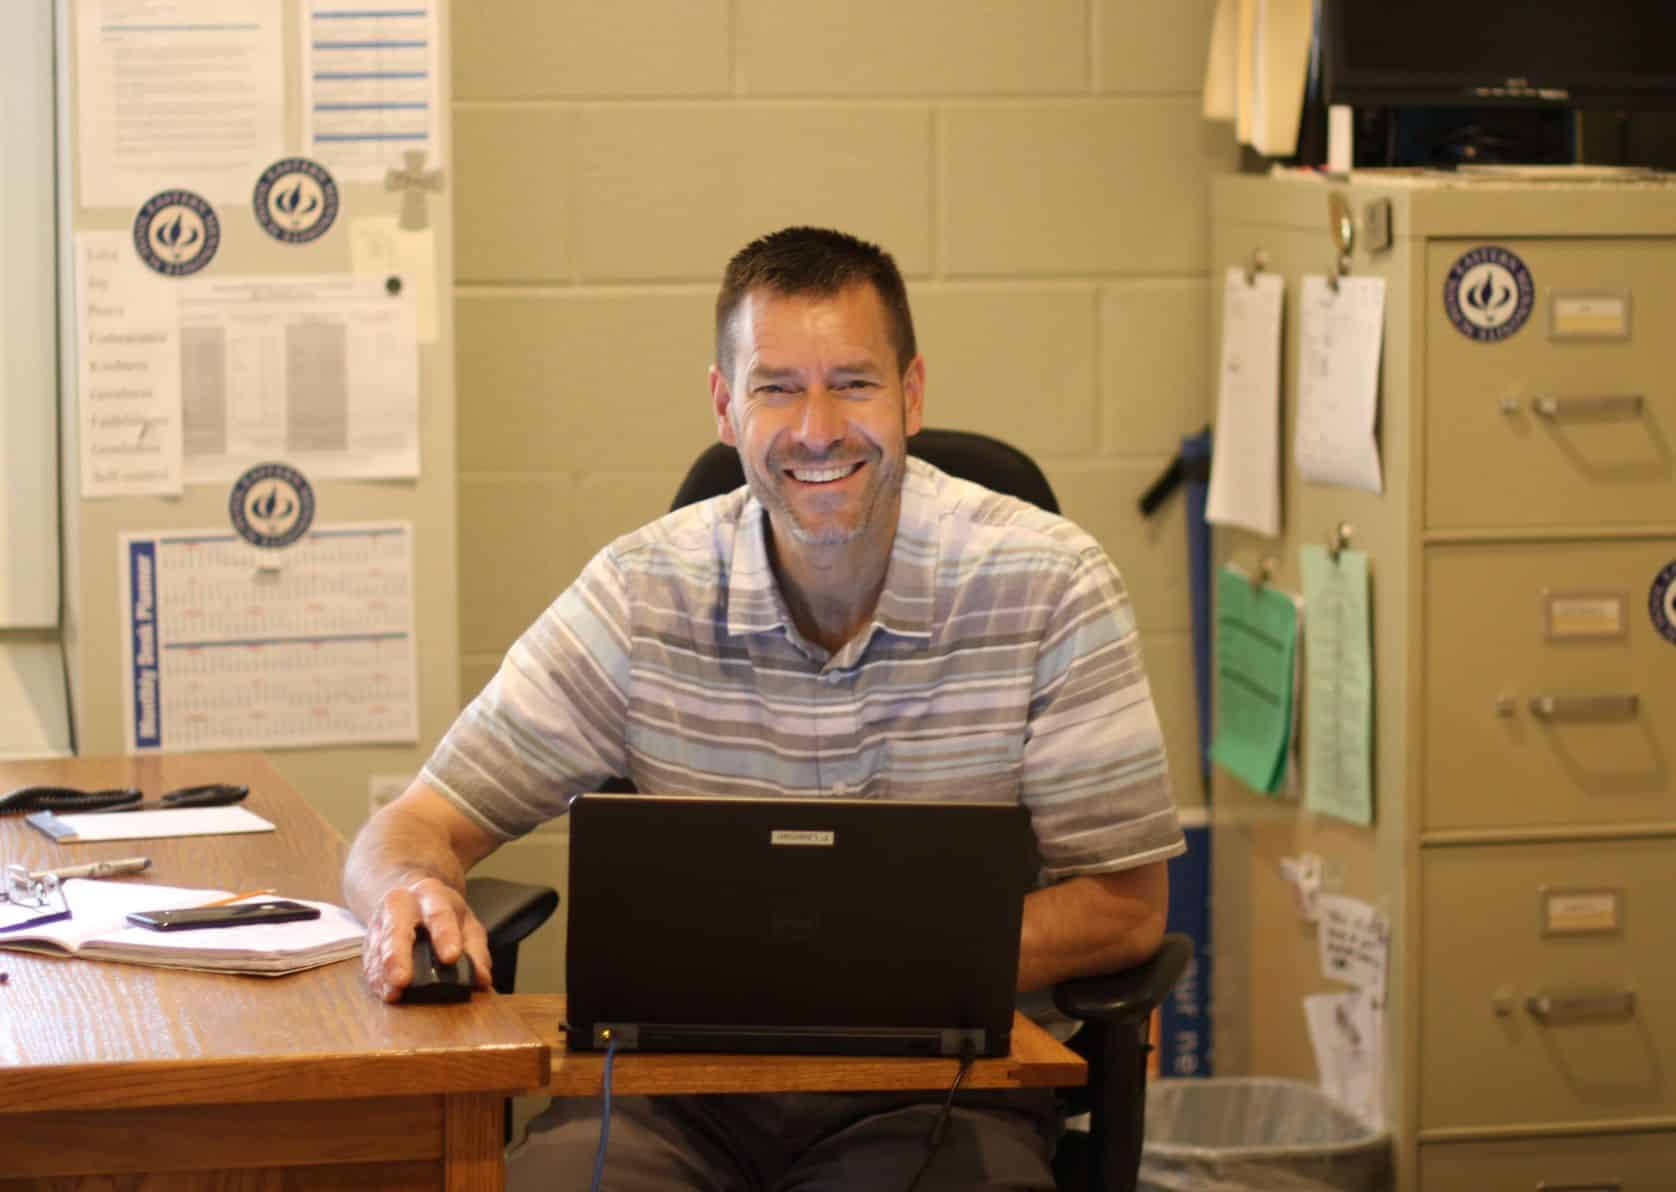 Paul Leaman, head of school, remains upbeat even during challenging times.